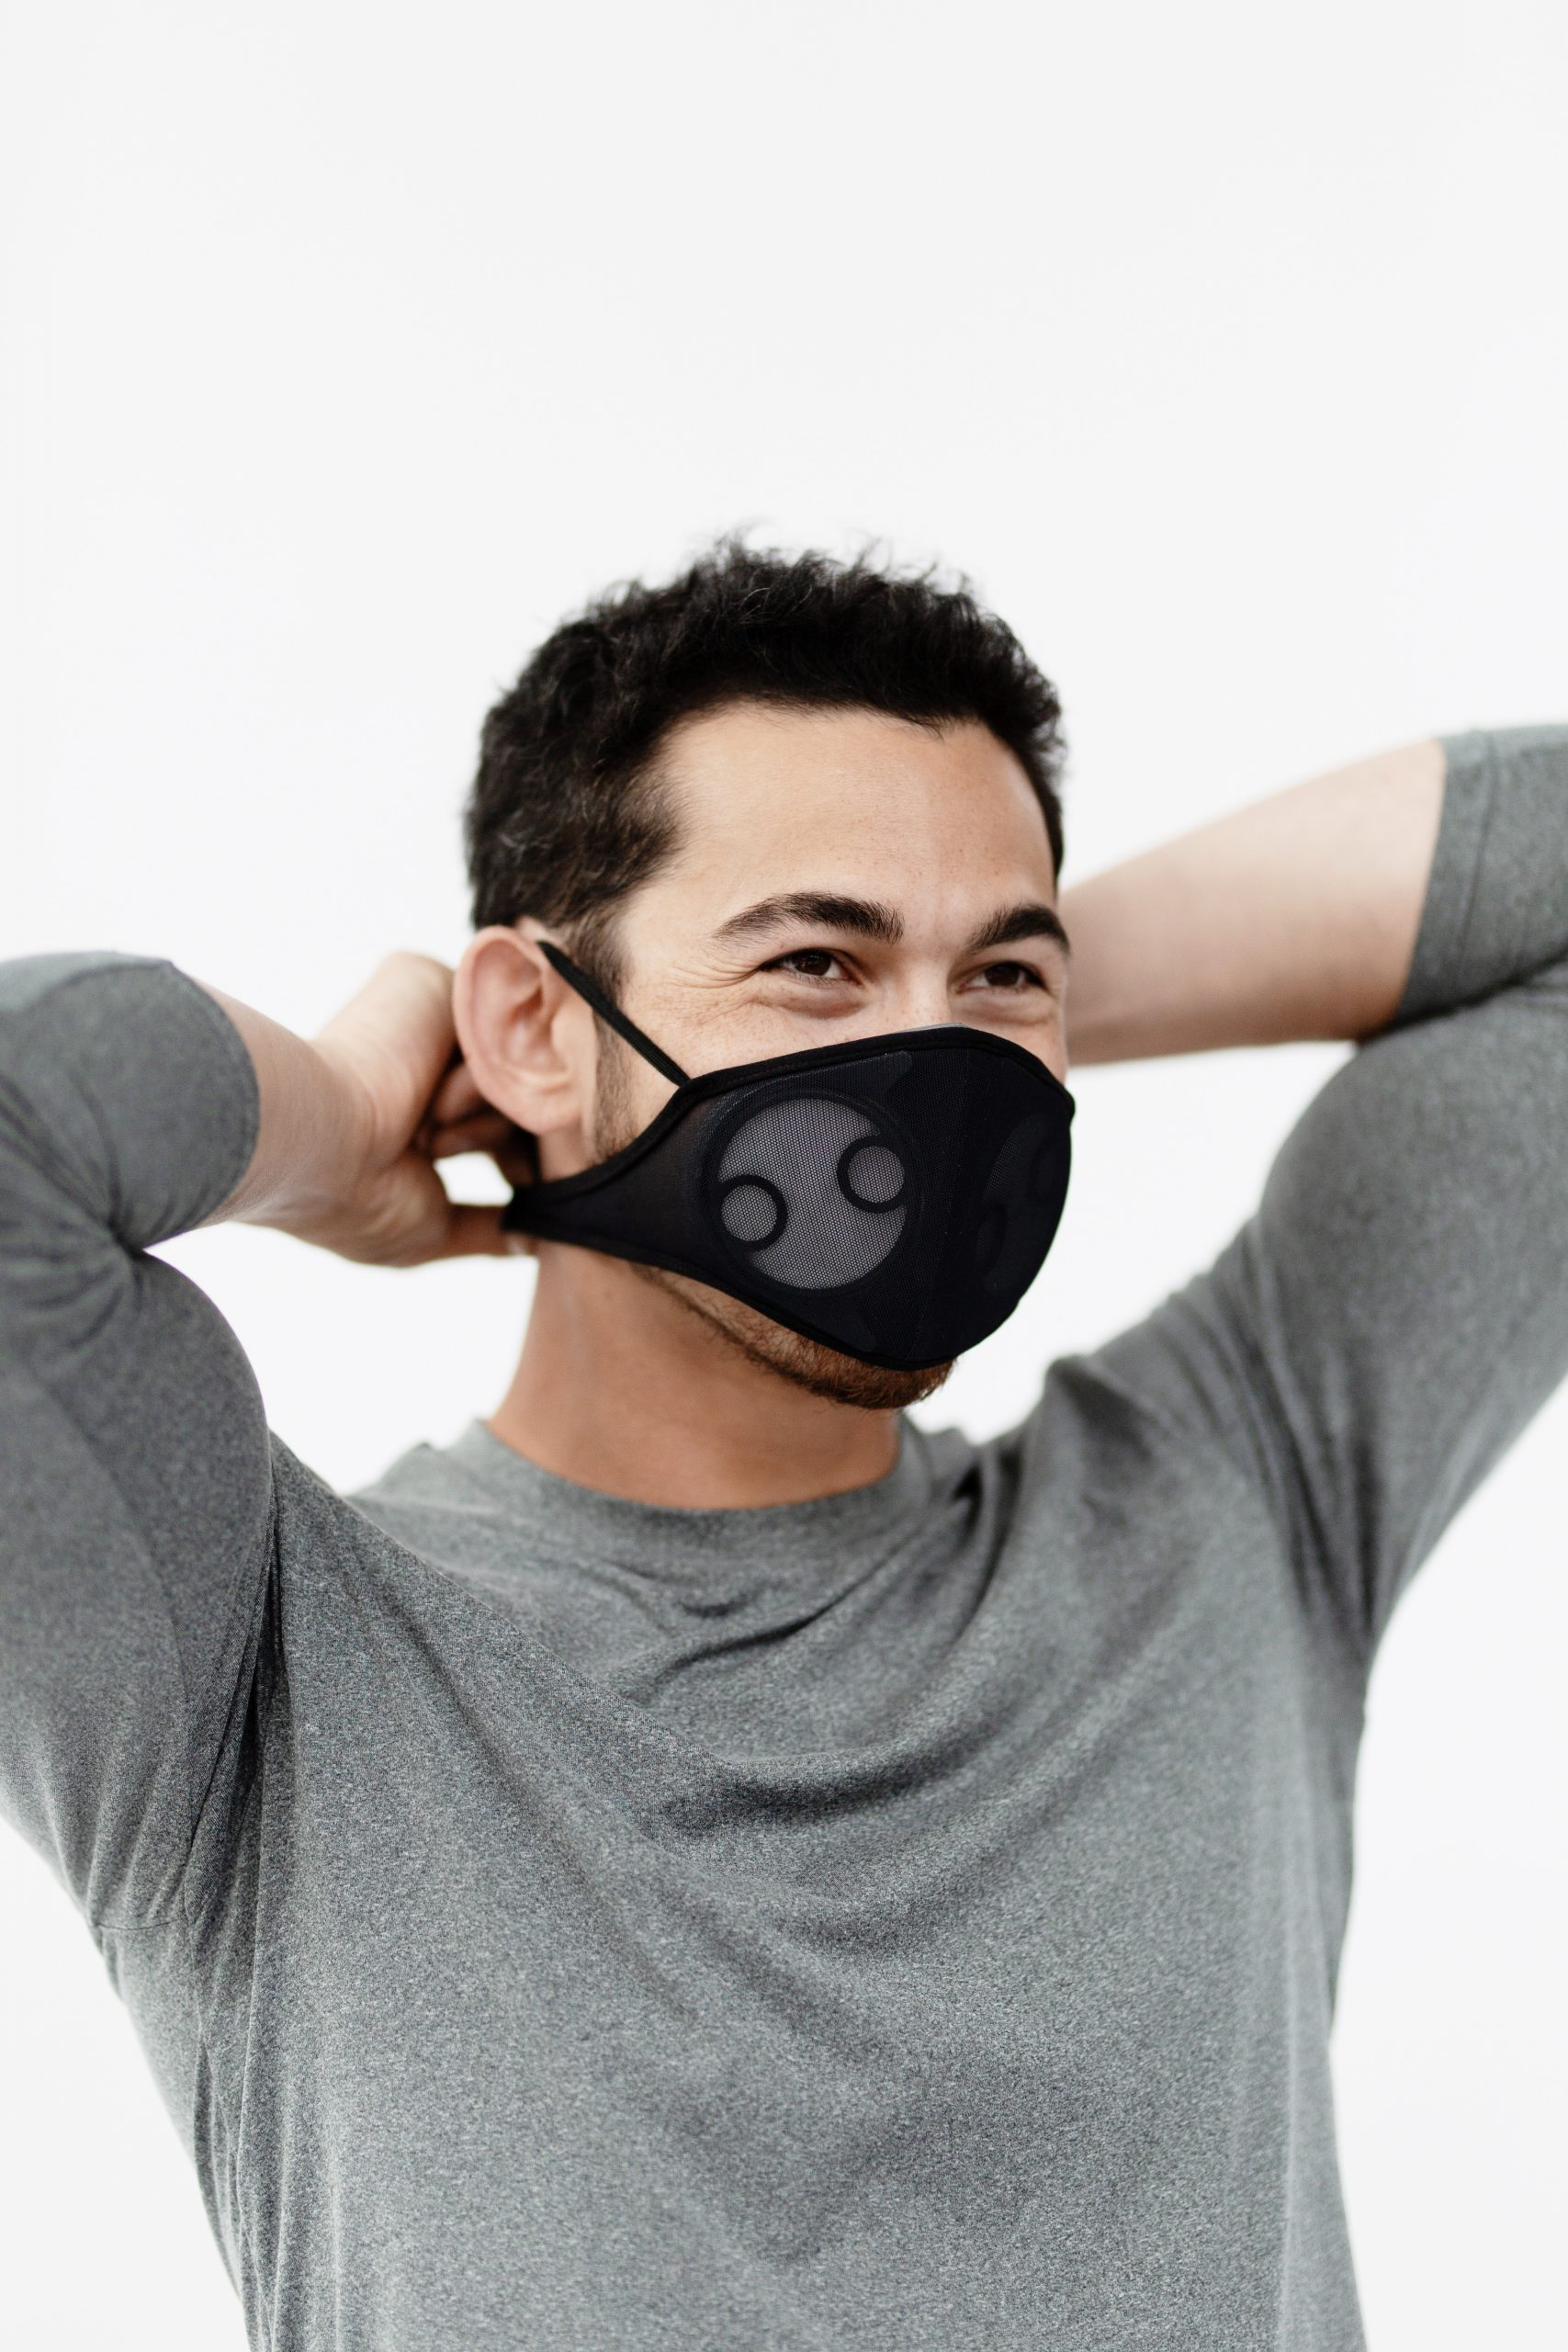 Breathe99's B2 mask fits comfortably while offering industrial-grade air filtration